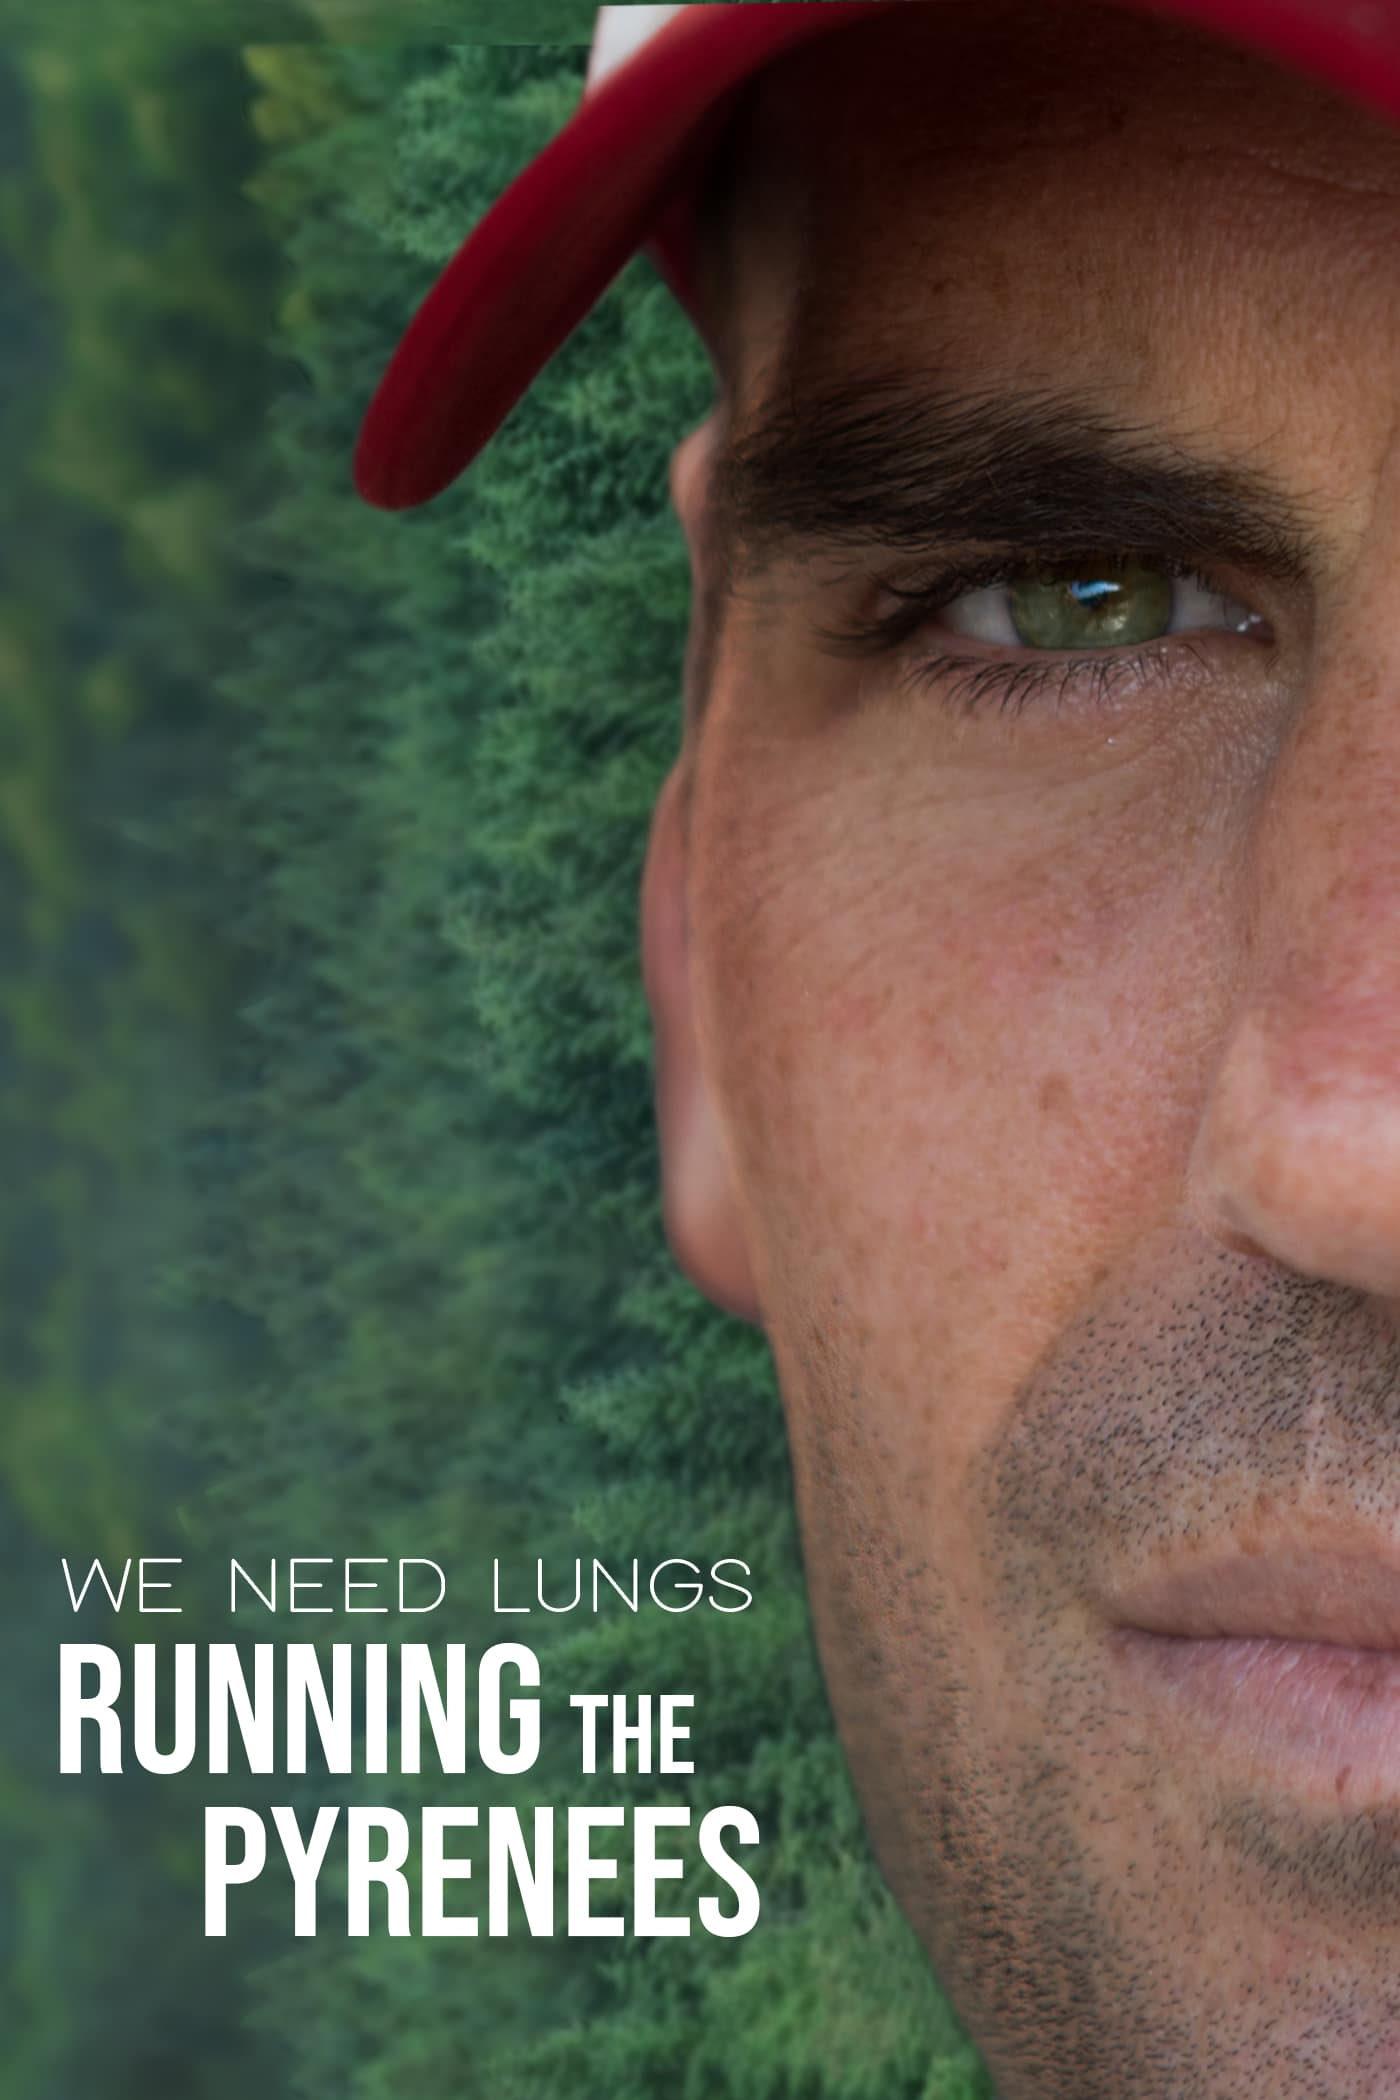 We Need Lungs: Running the Pyrenees